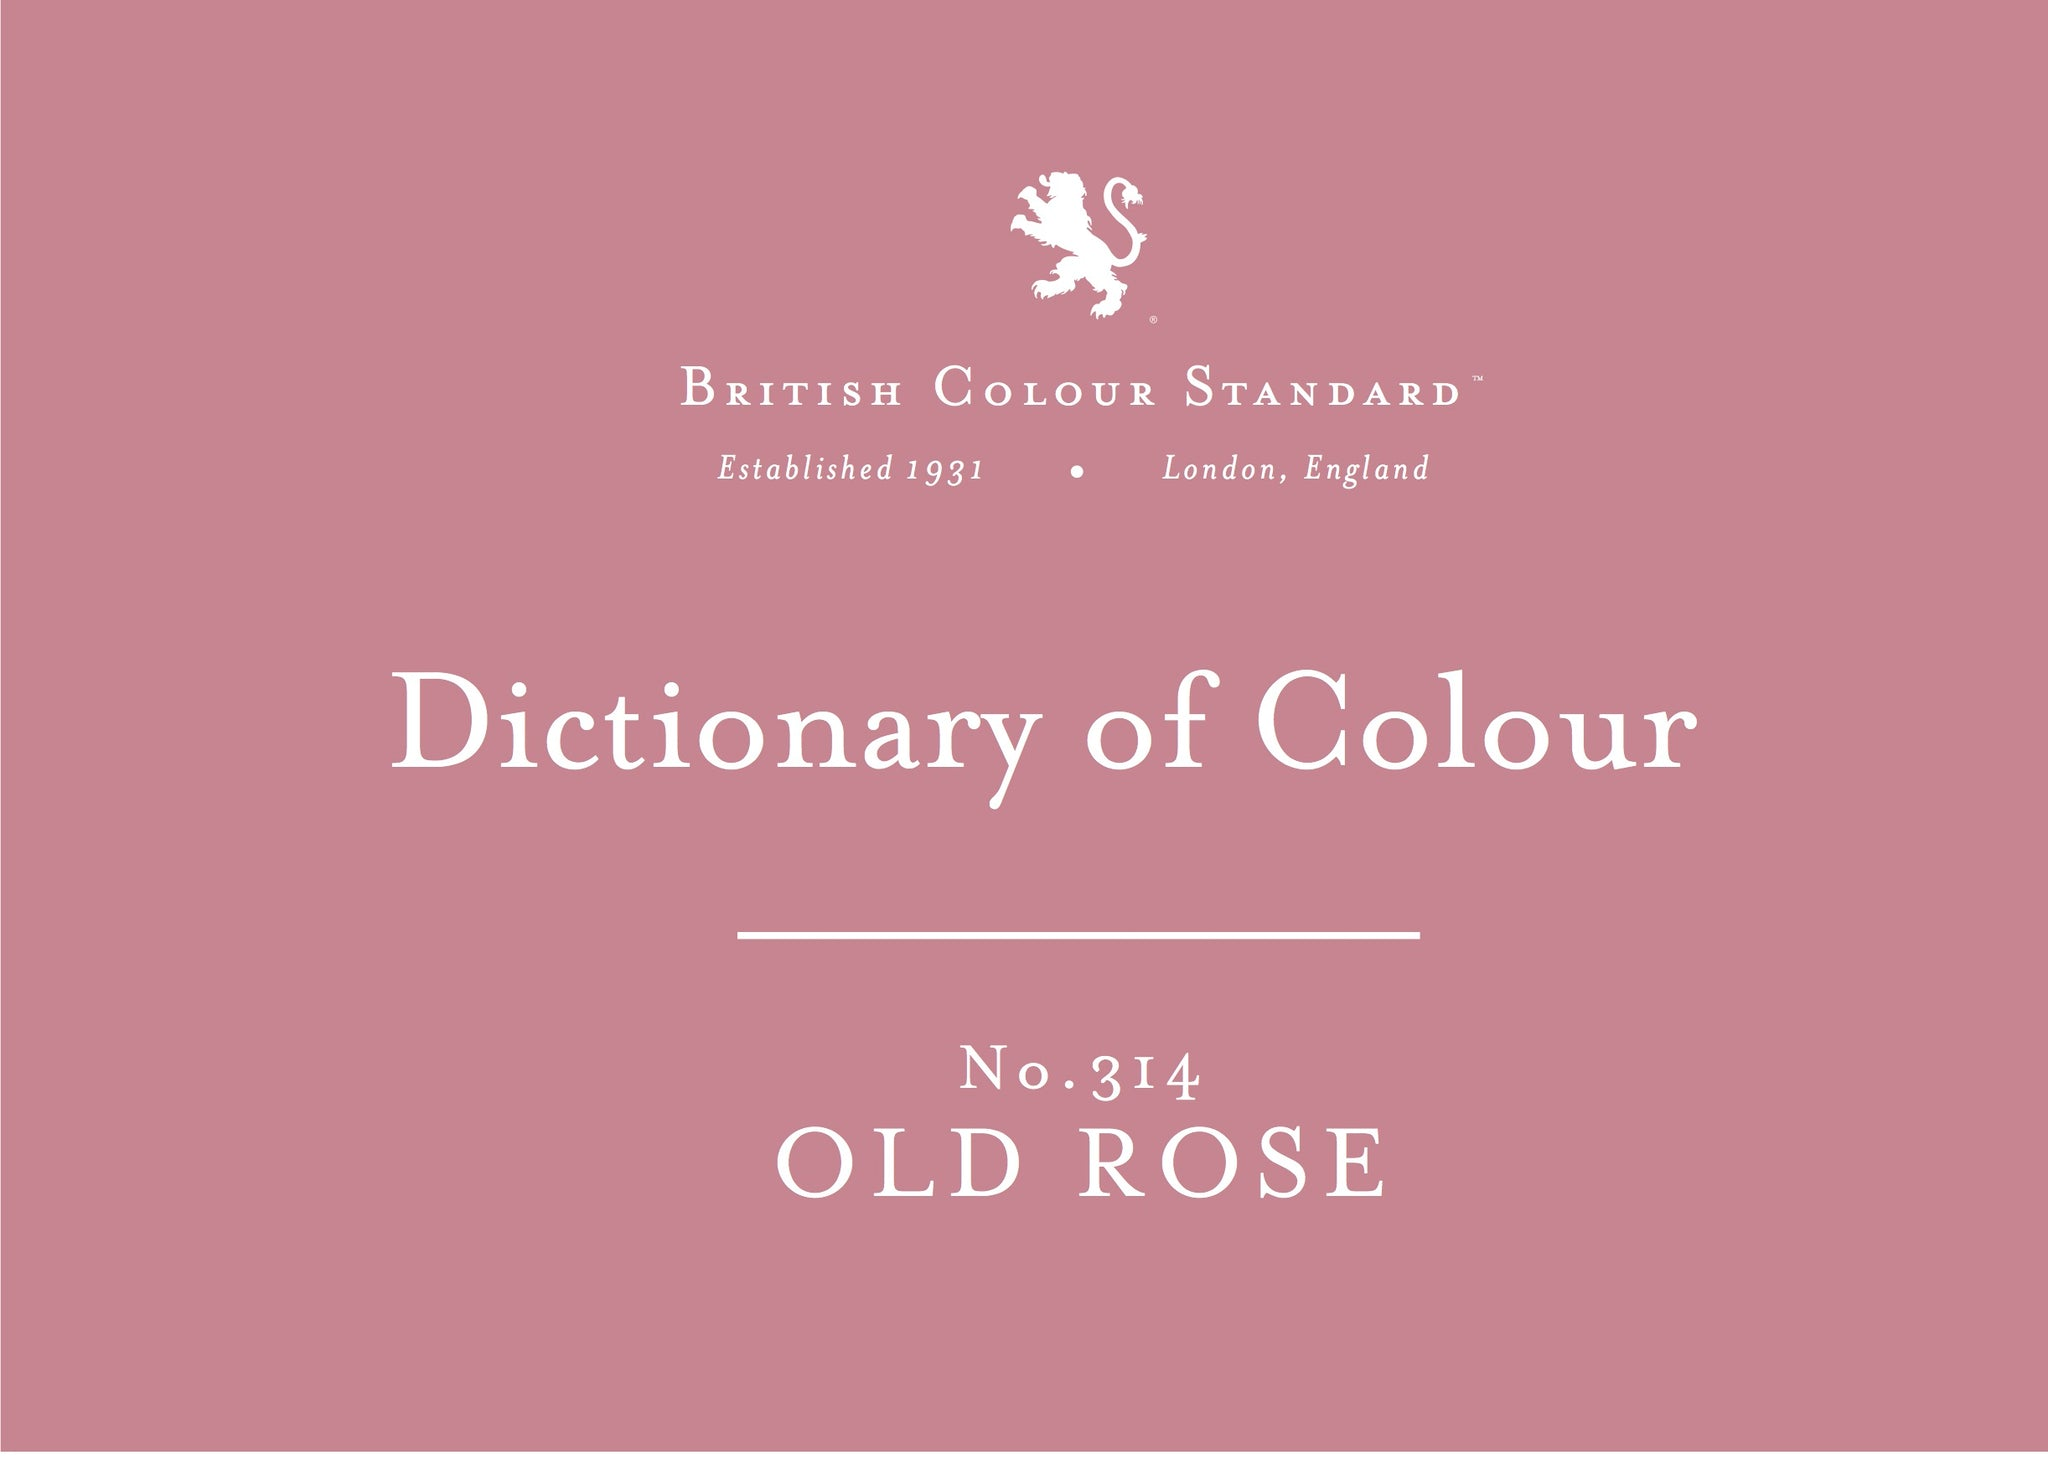 BRITISH COLOUR STANDARD - Old Rose No. 314